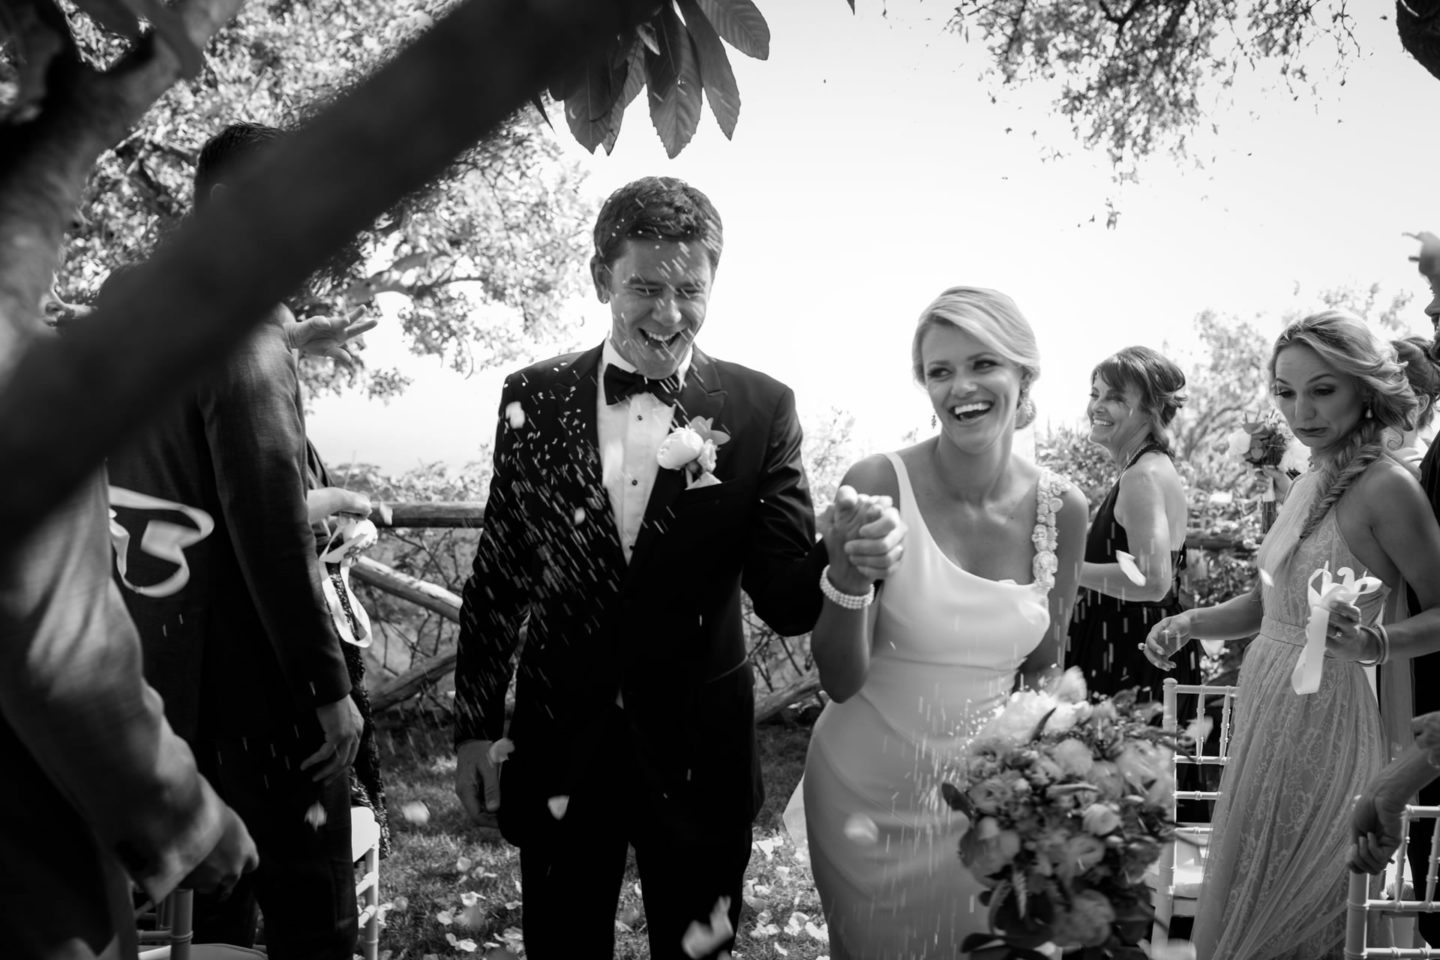 Petals :: Wedding in Positano. Sea and love :: Wedding photographer based in Florence Tuscany Italy :: photo-28 :: Petals